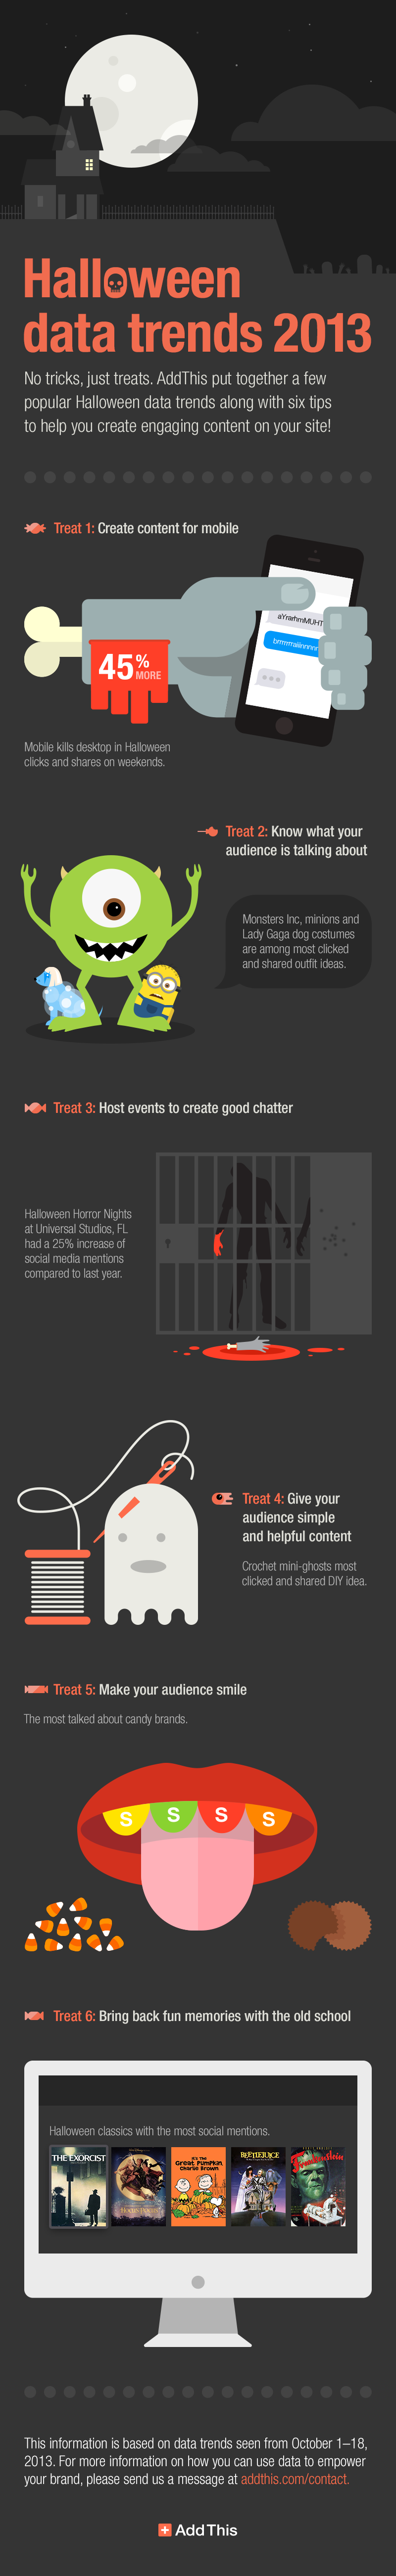 halloween_infographic_RD1-2